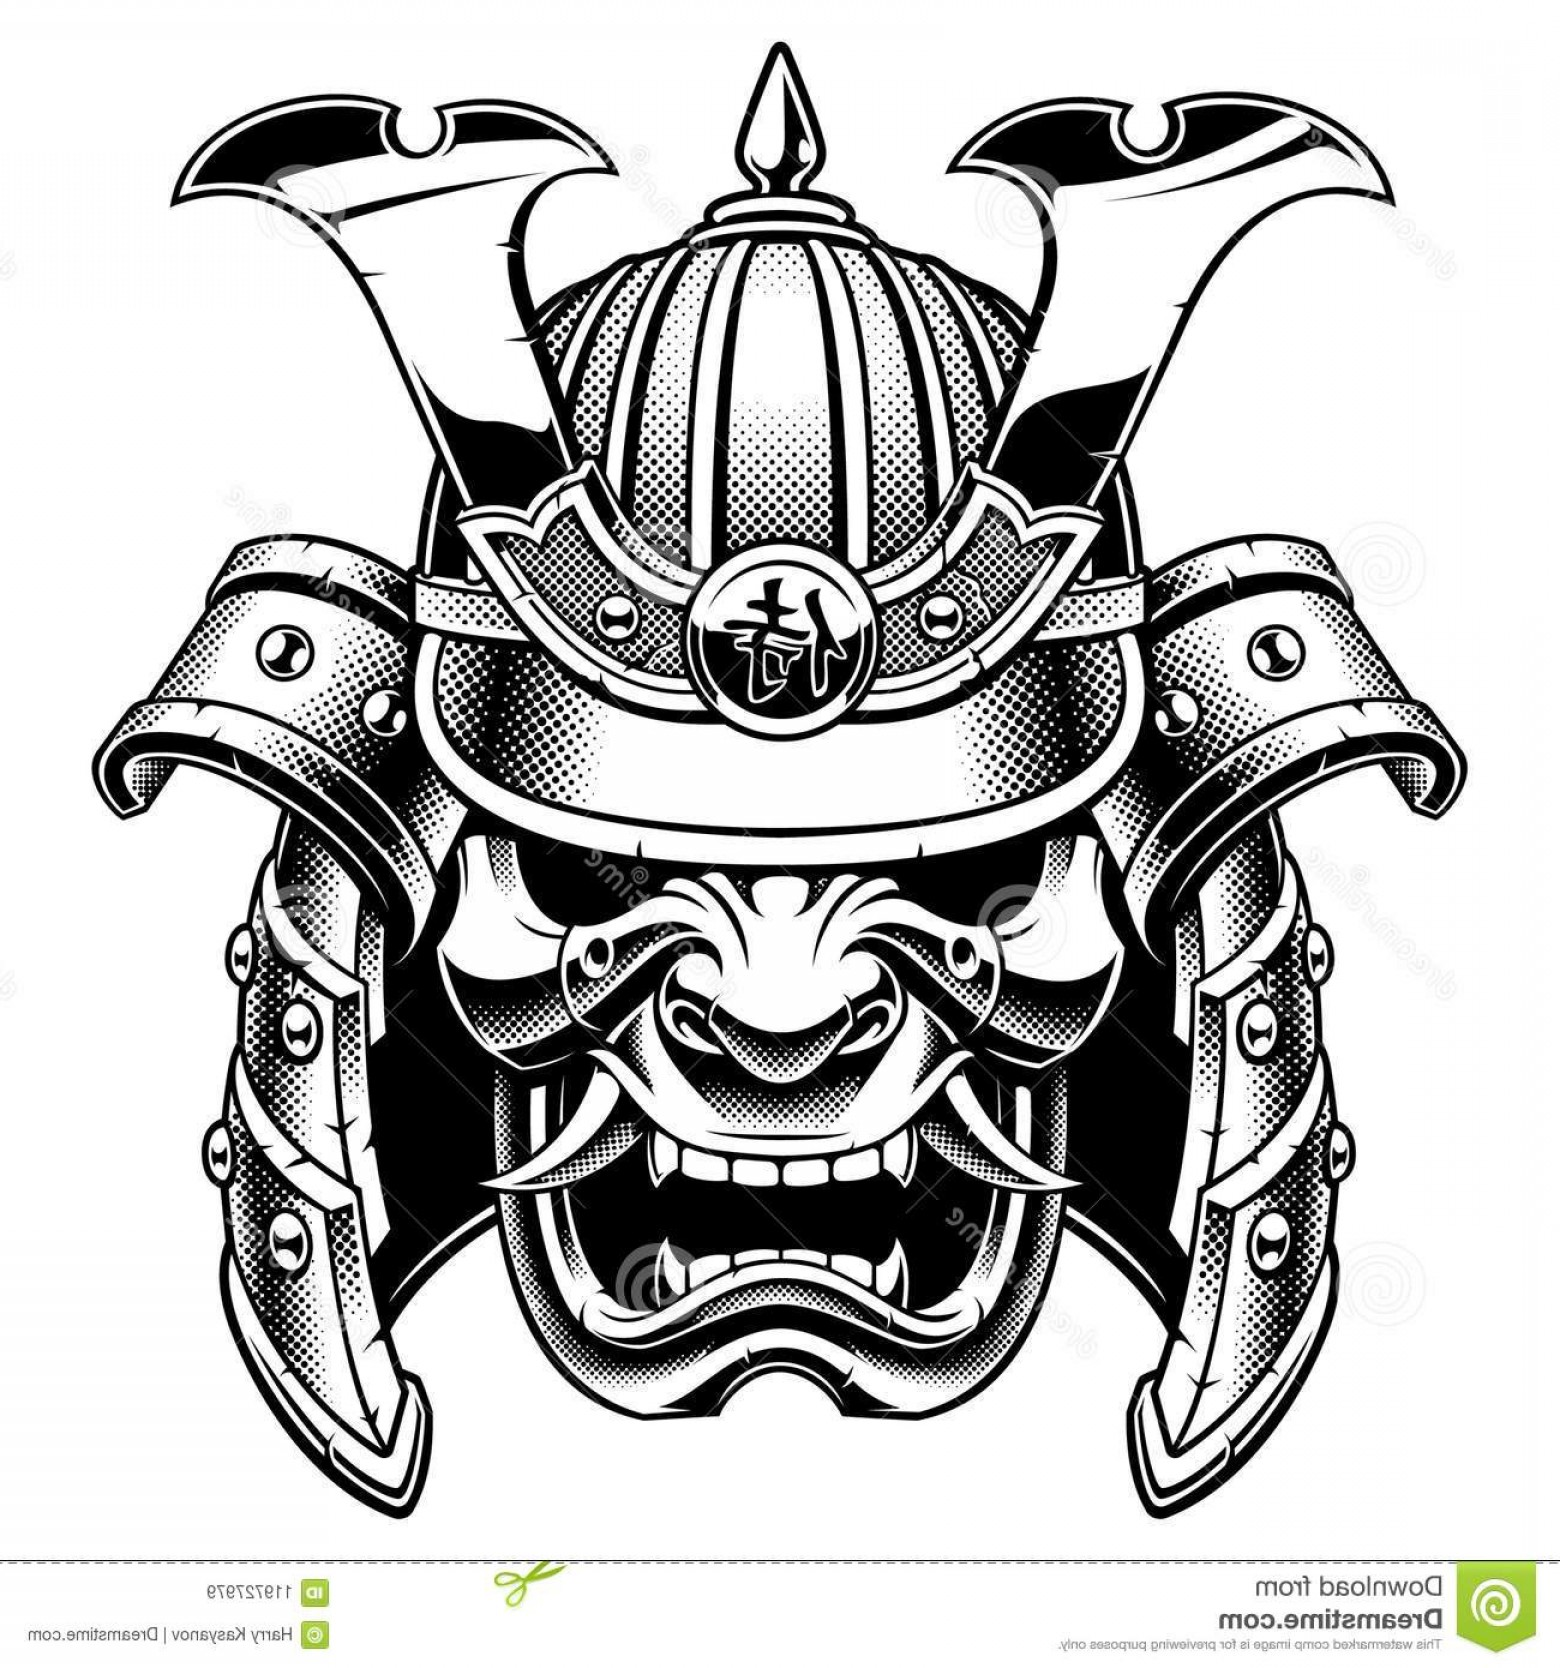 Samurai Warrior Vector: Samurai Warrior Mask Samurai Warrior Mask Traditional Armor Japanese Warrior Vector Illustration Shirt Graphic Isolated Image